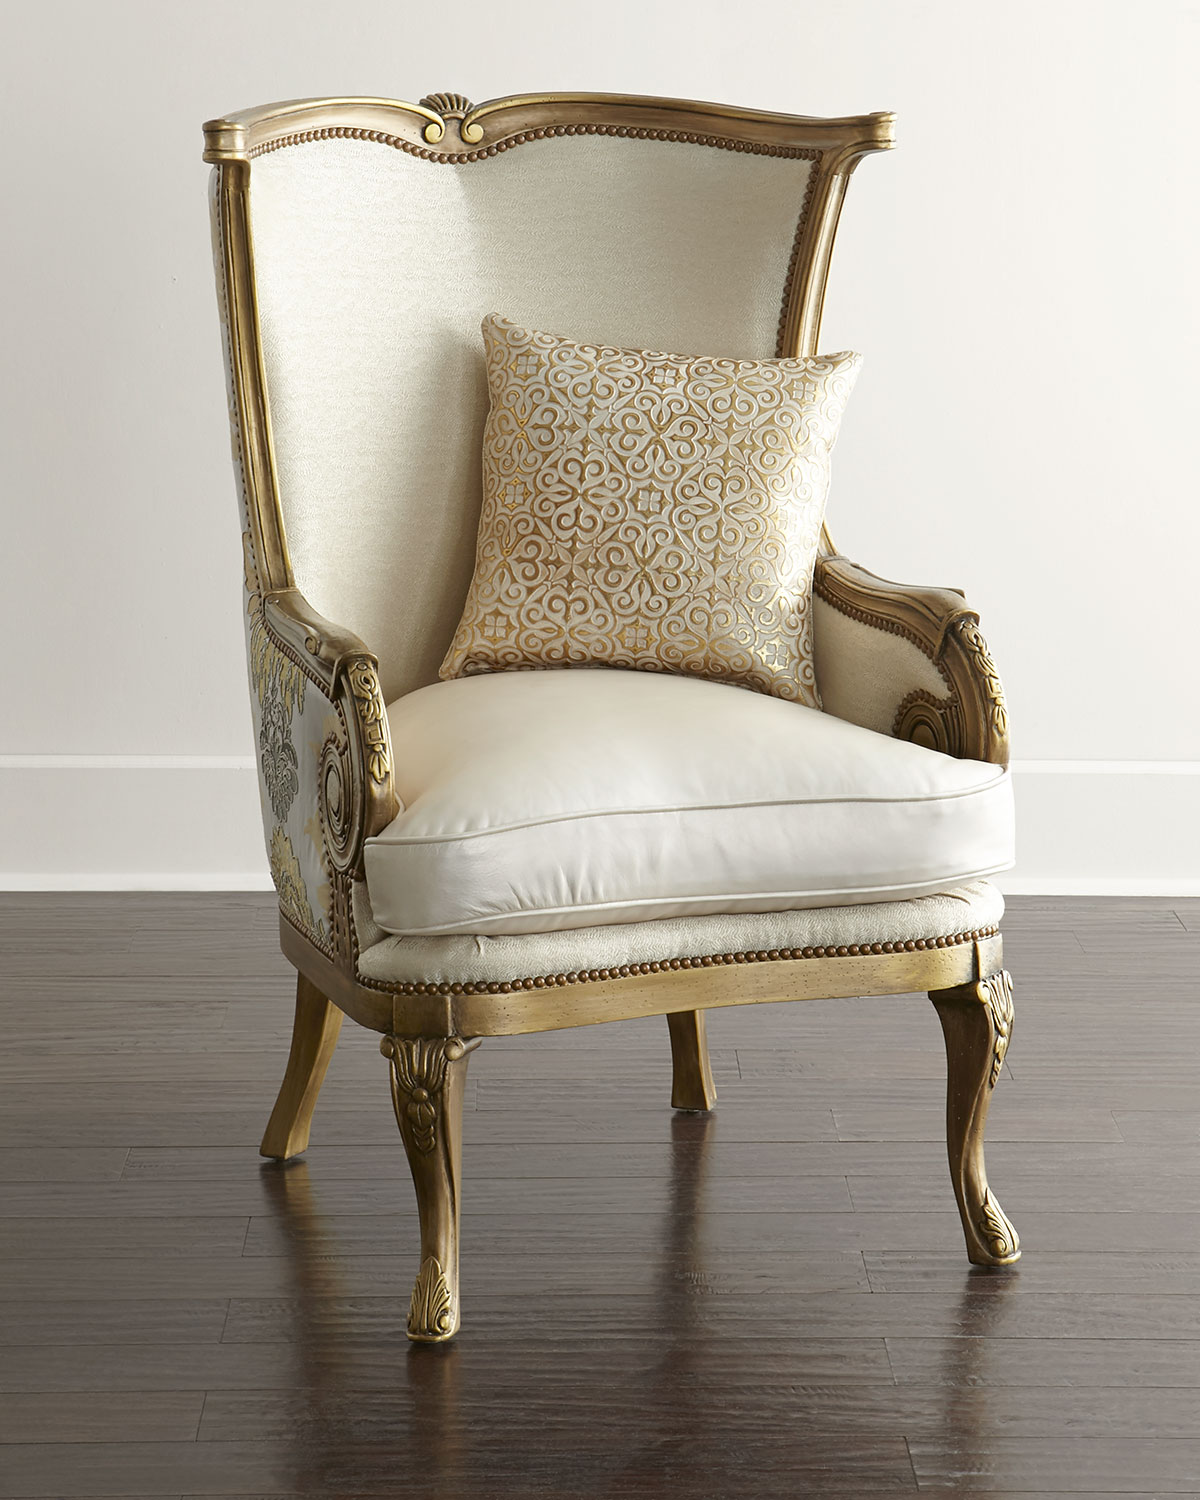 Damask Chair Golden Damask Chair